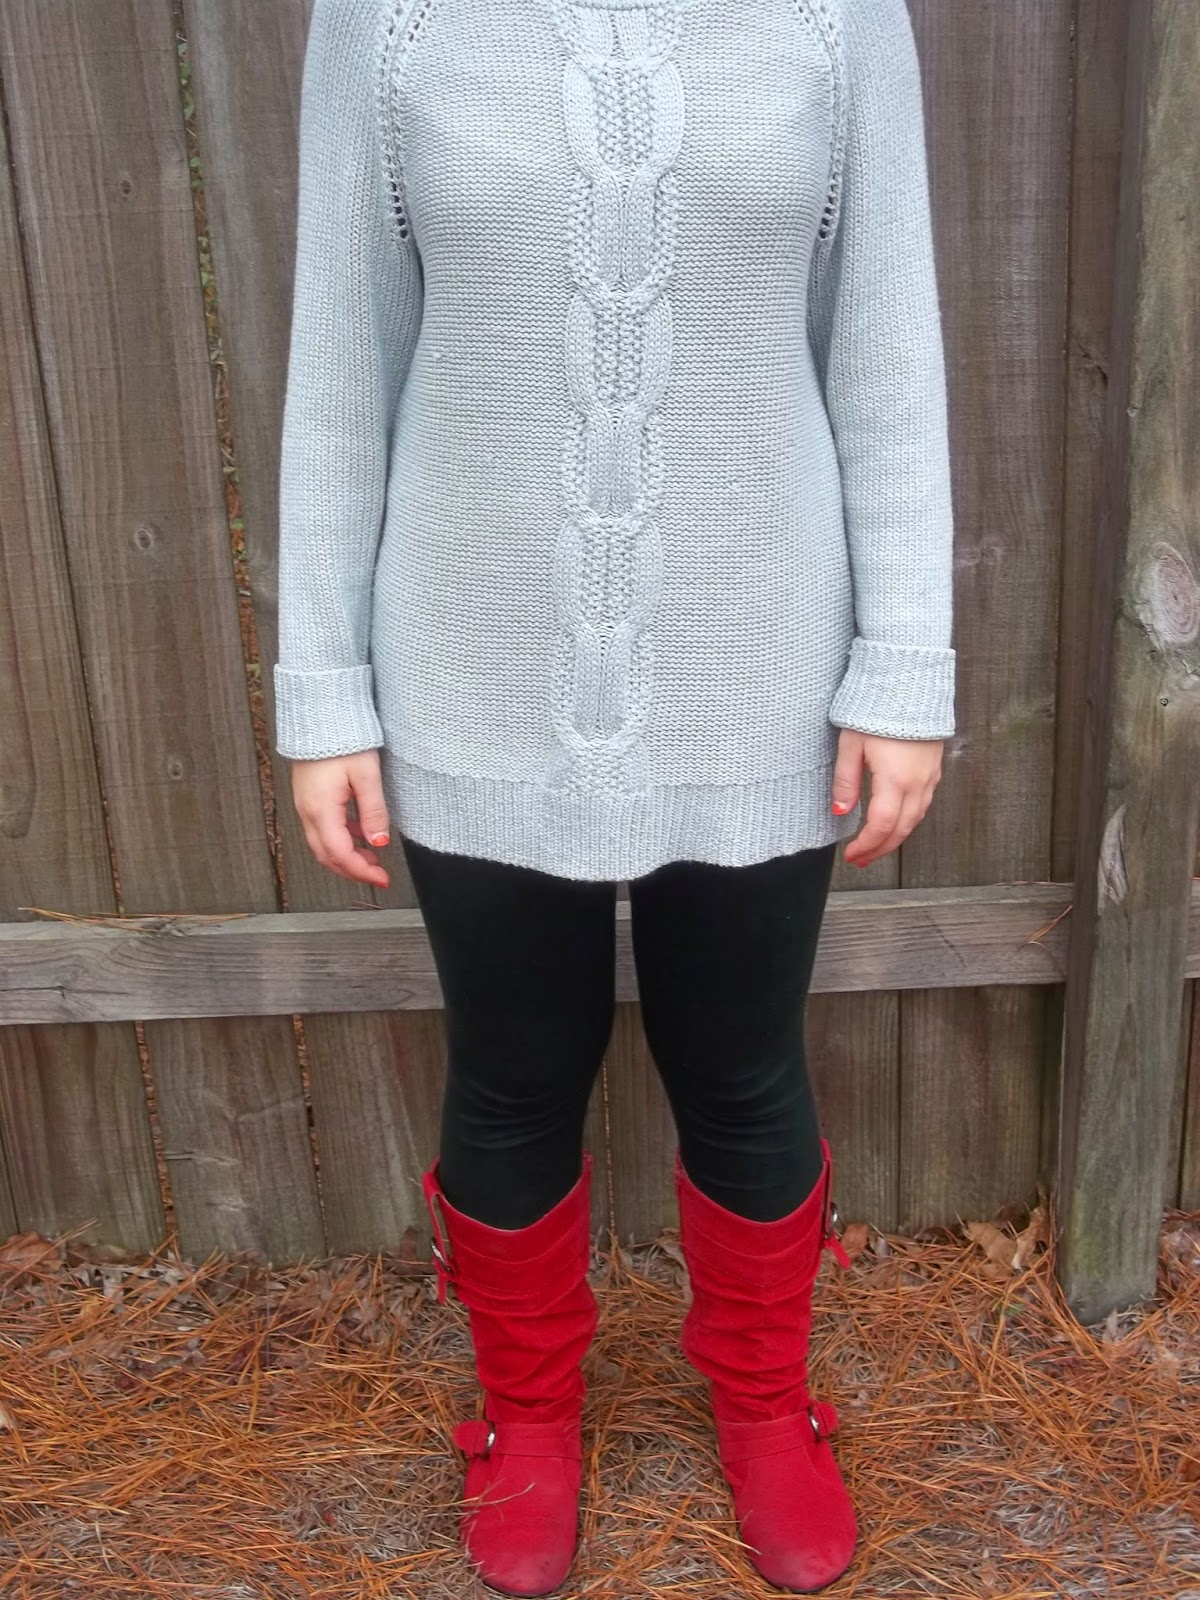 Casual Holiday Outfit. Grey tunic sweater, black leggings, red boots.